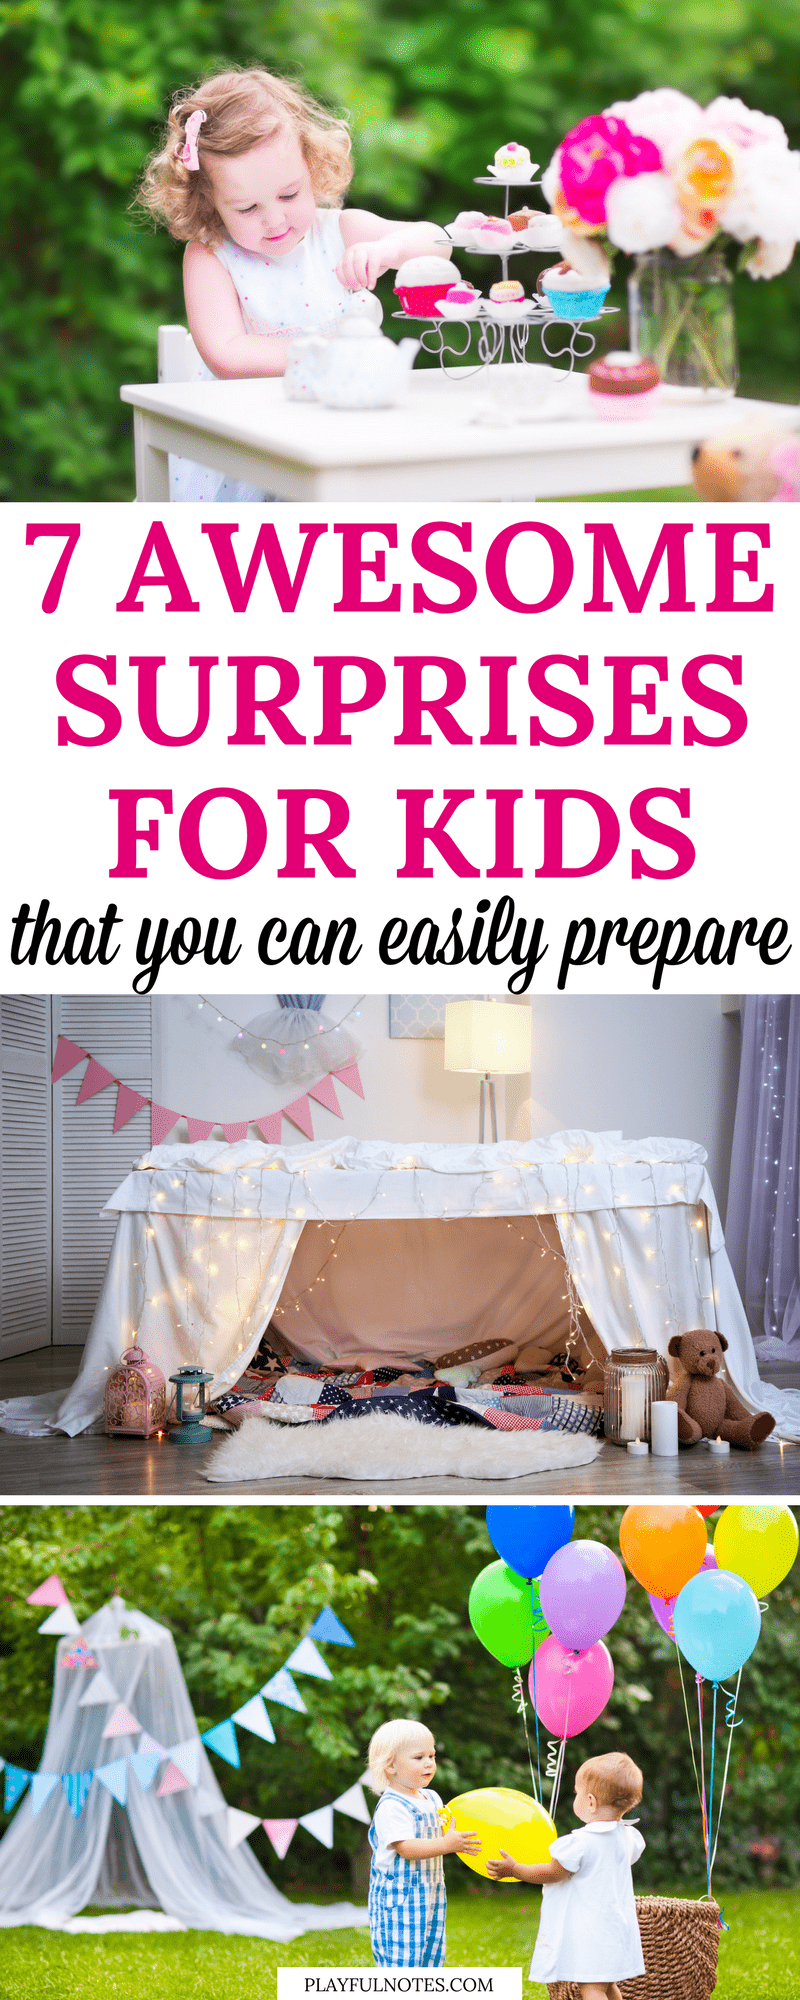 Watch How to Surprise Your Kids with a Trip to Walt Disney World video